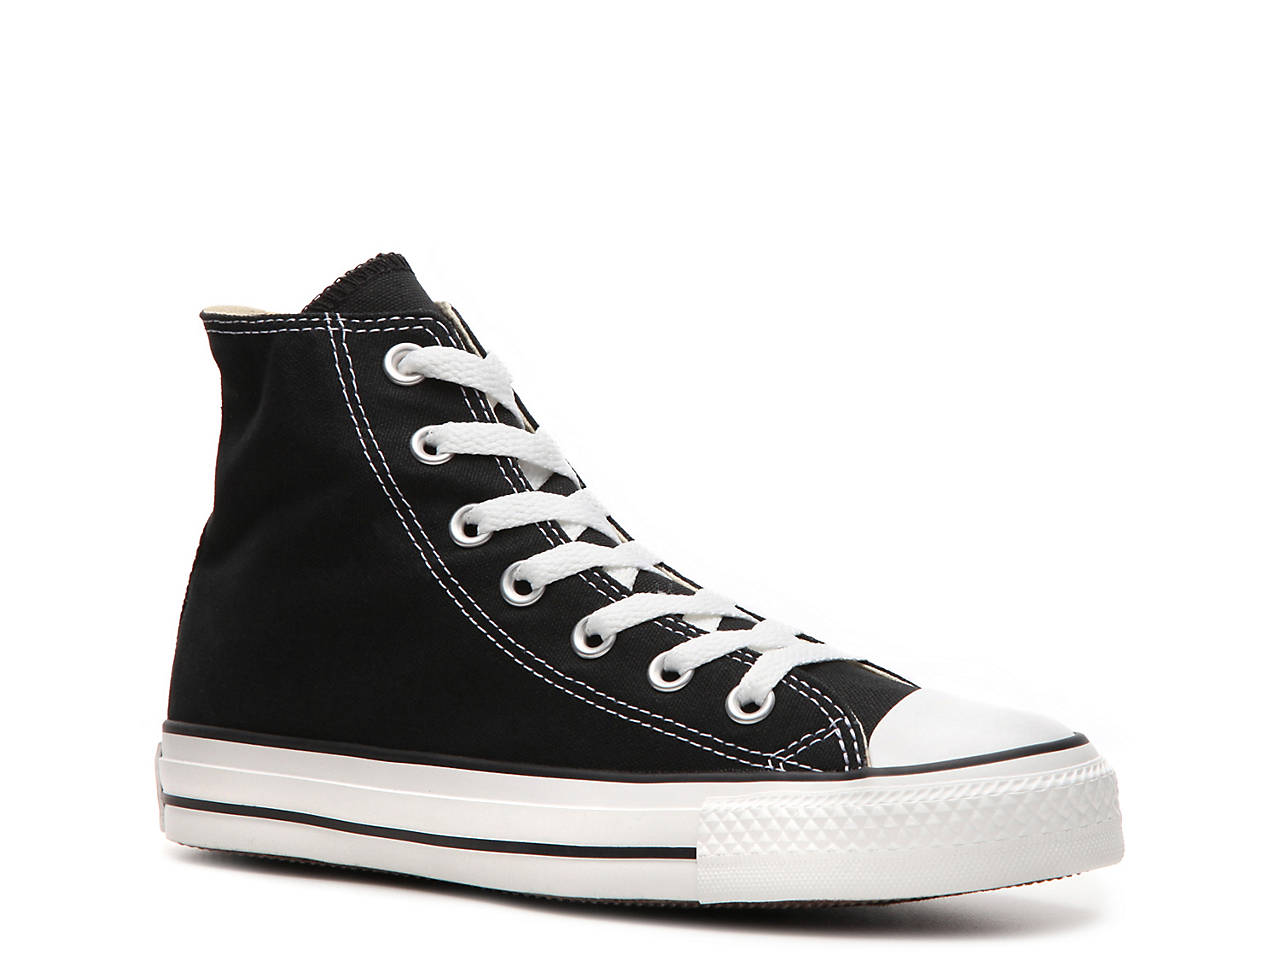 576f47b9280a Converse Chuck Taylor All Star High-Top Sneaker - Women s Women s ...